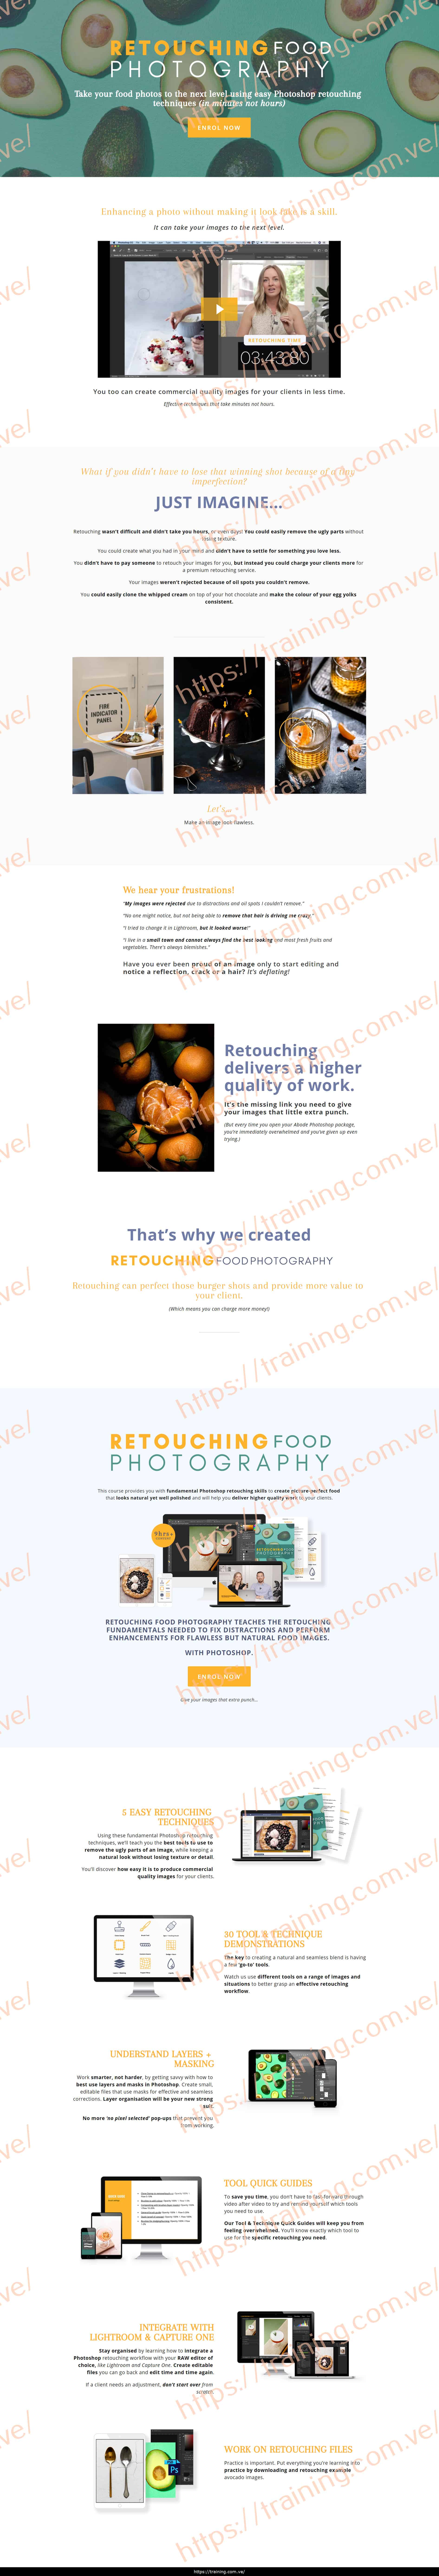 Retouching Food Photography by Rachel + Matt Korinek Sales Page